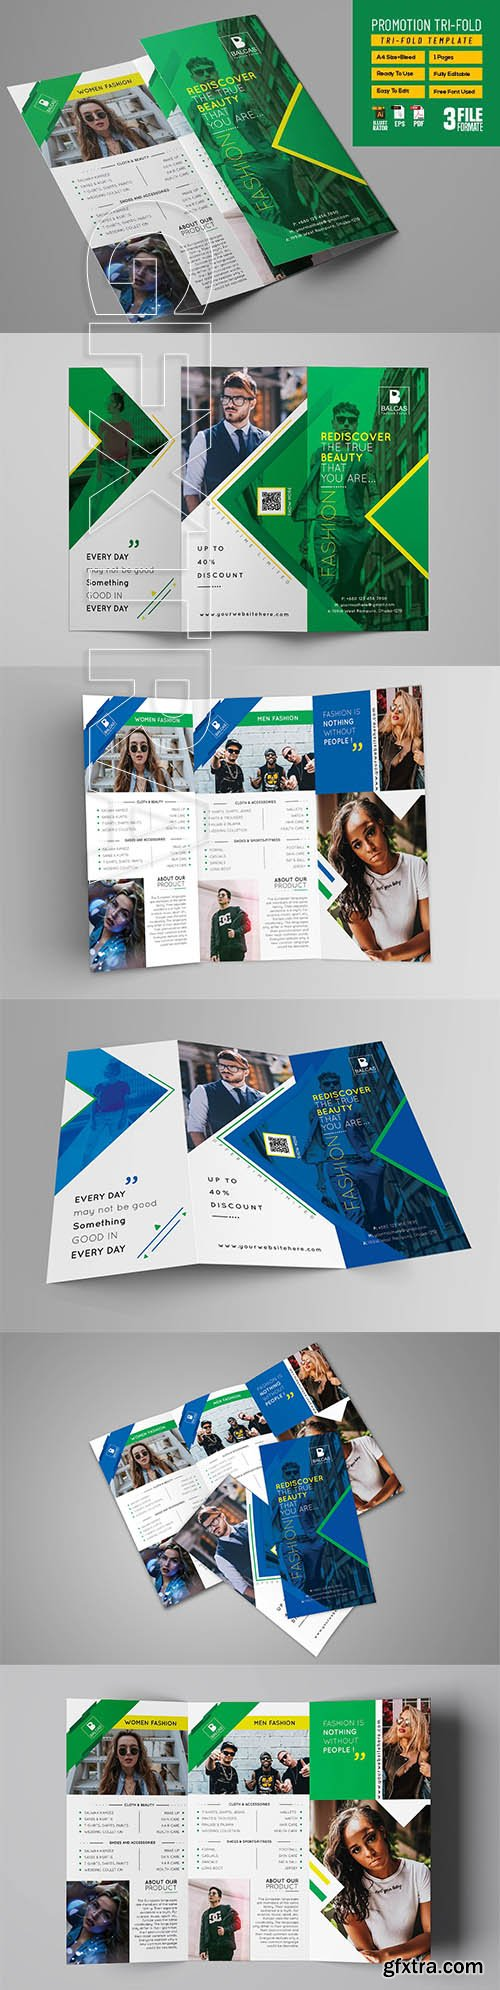 CreativeMarket - Shop Promotion Tri-fold 3209759